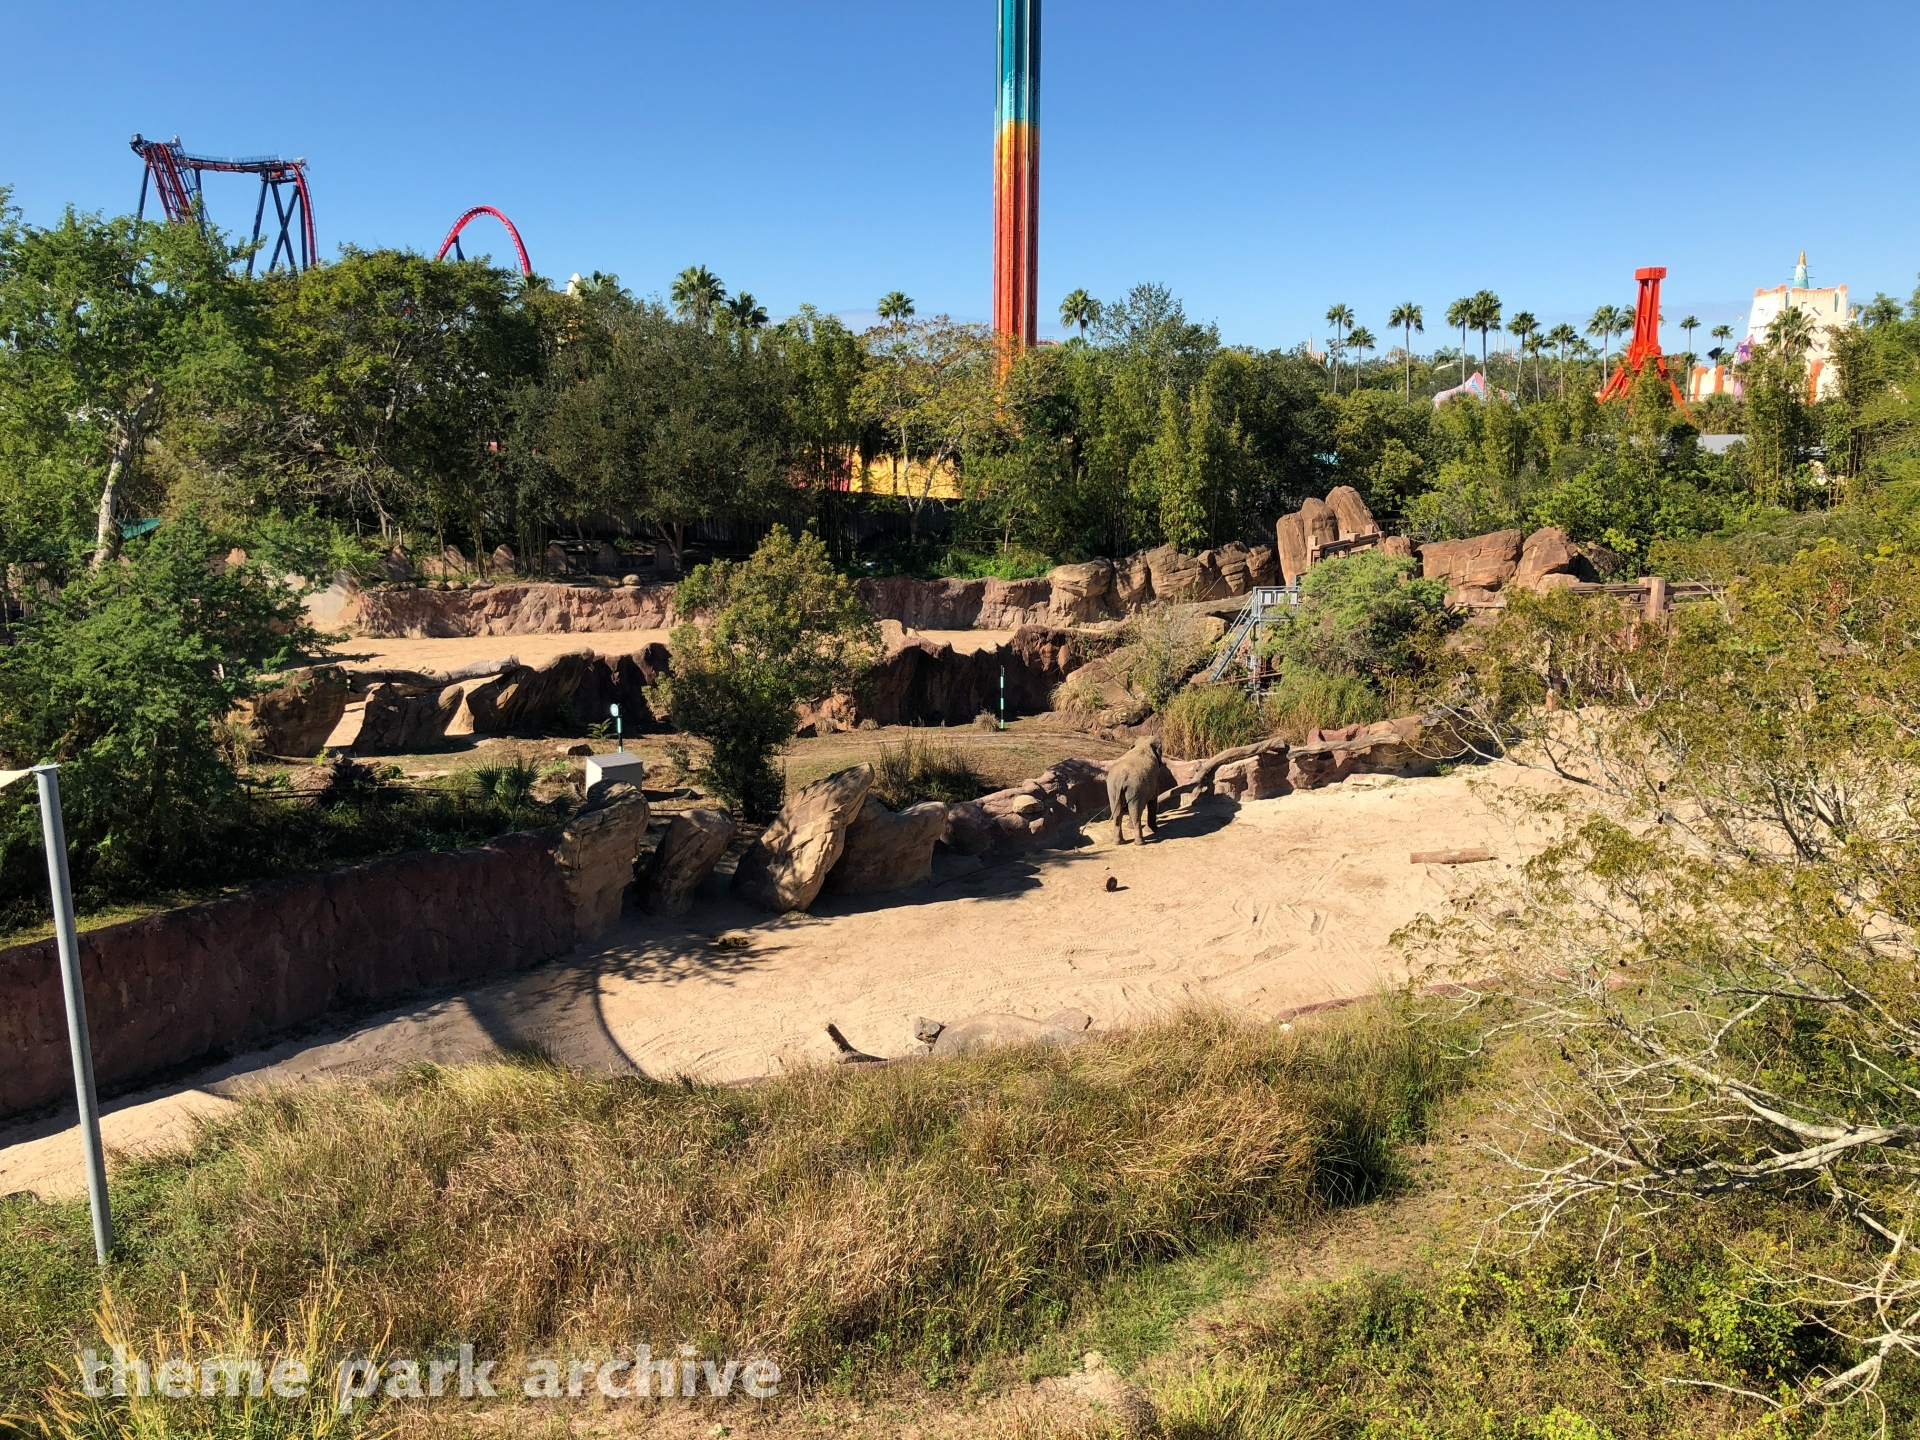 Serengeti Plain at Busch Gardens Tampa | Theme Park Archive